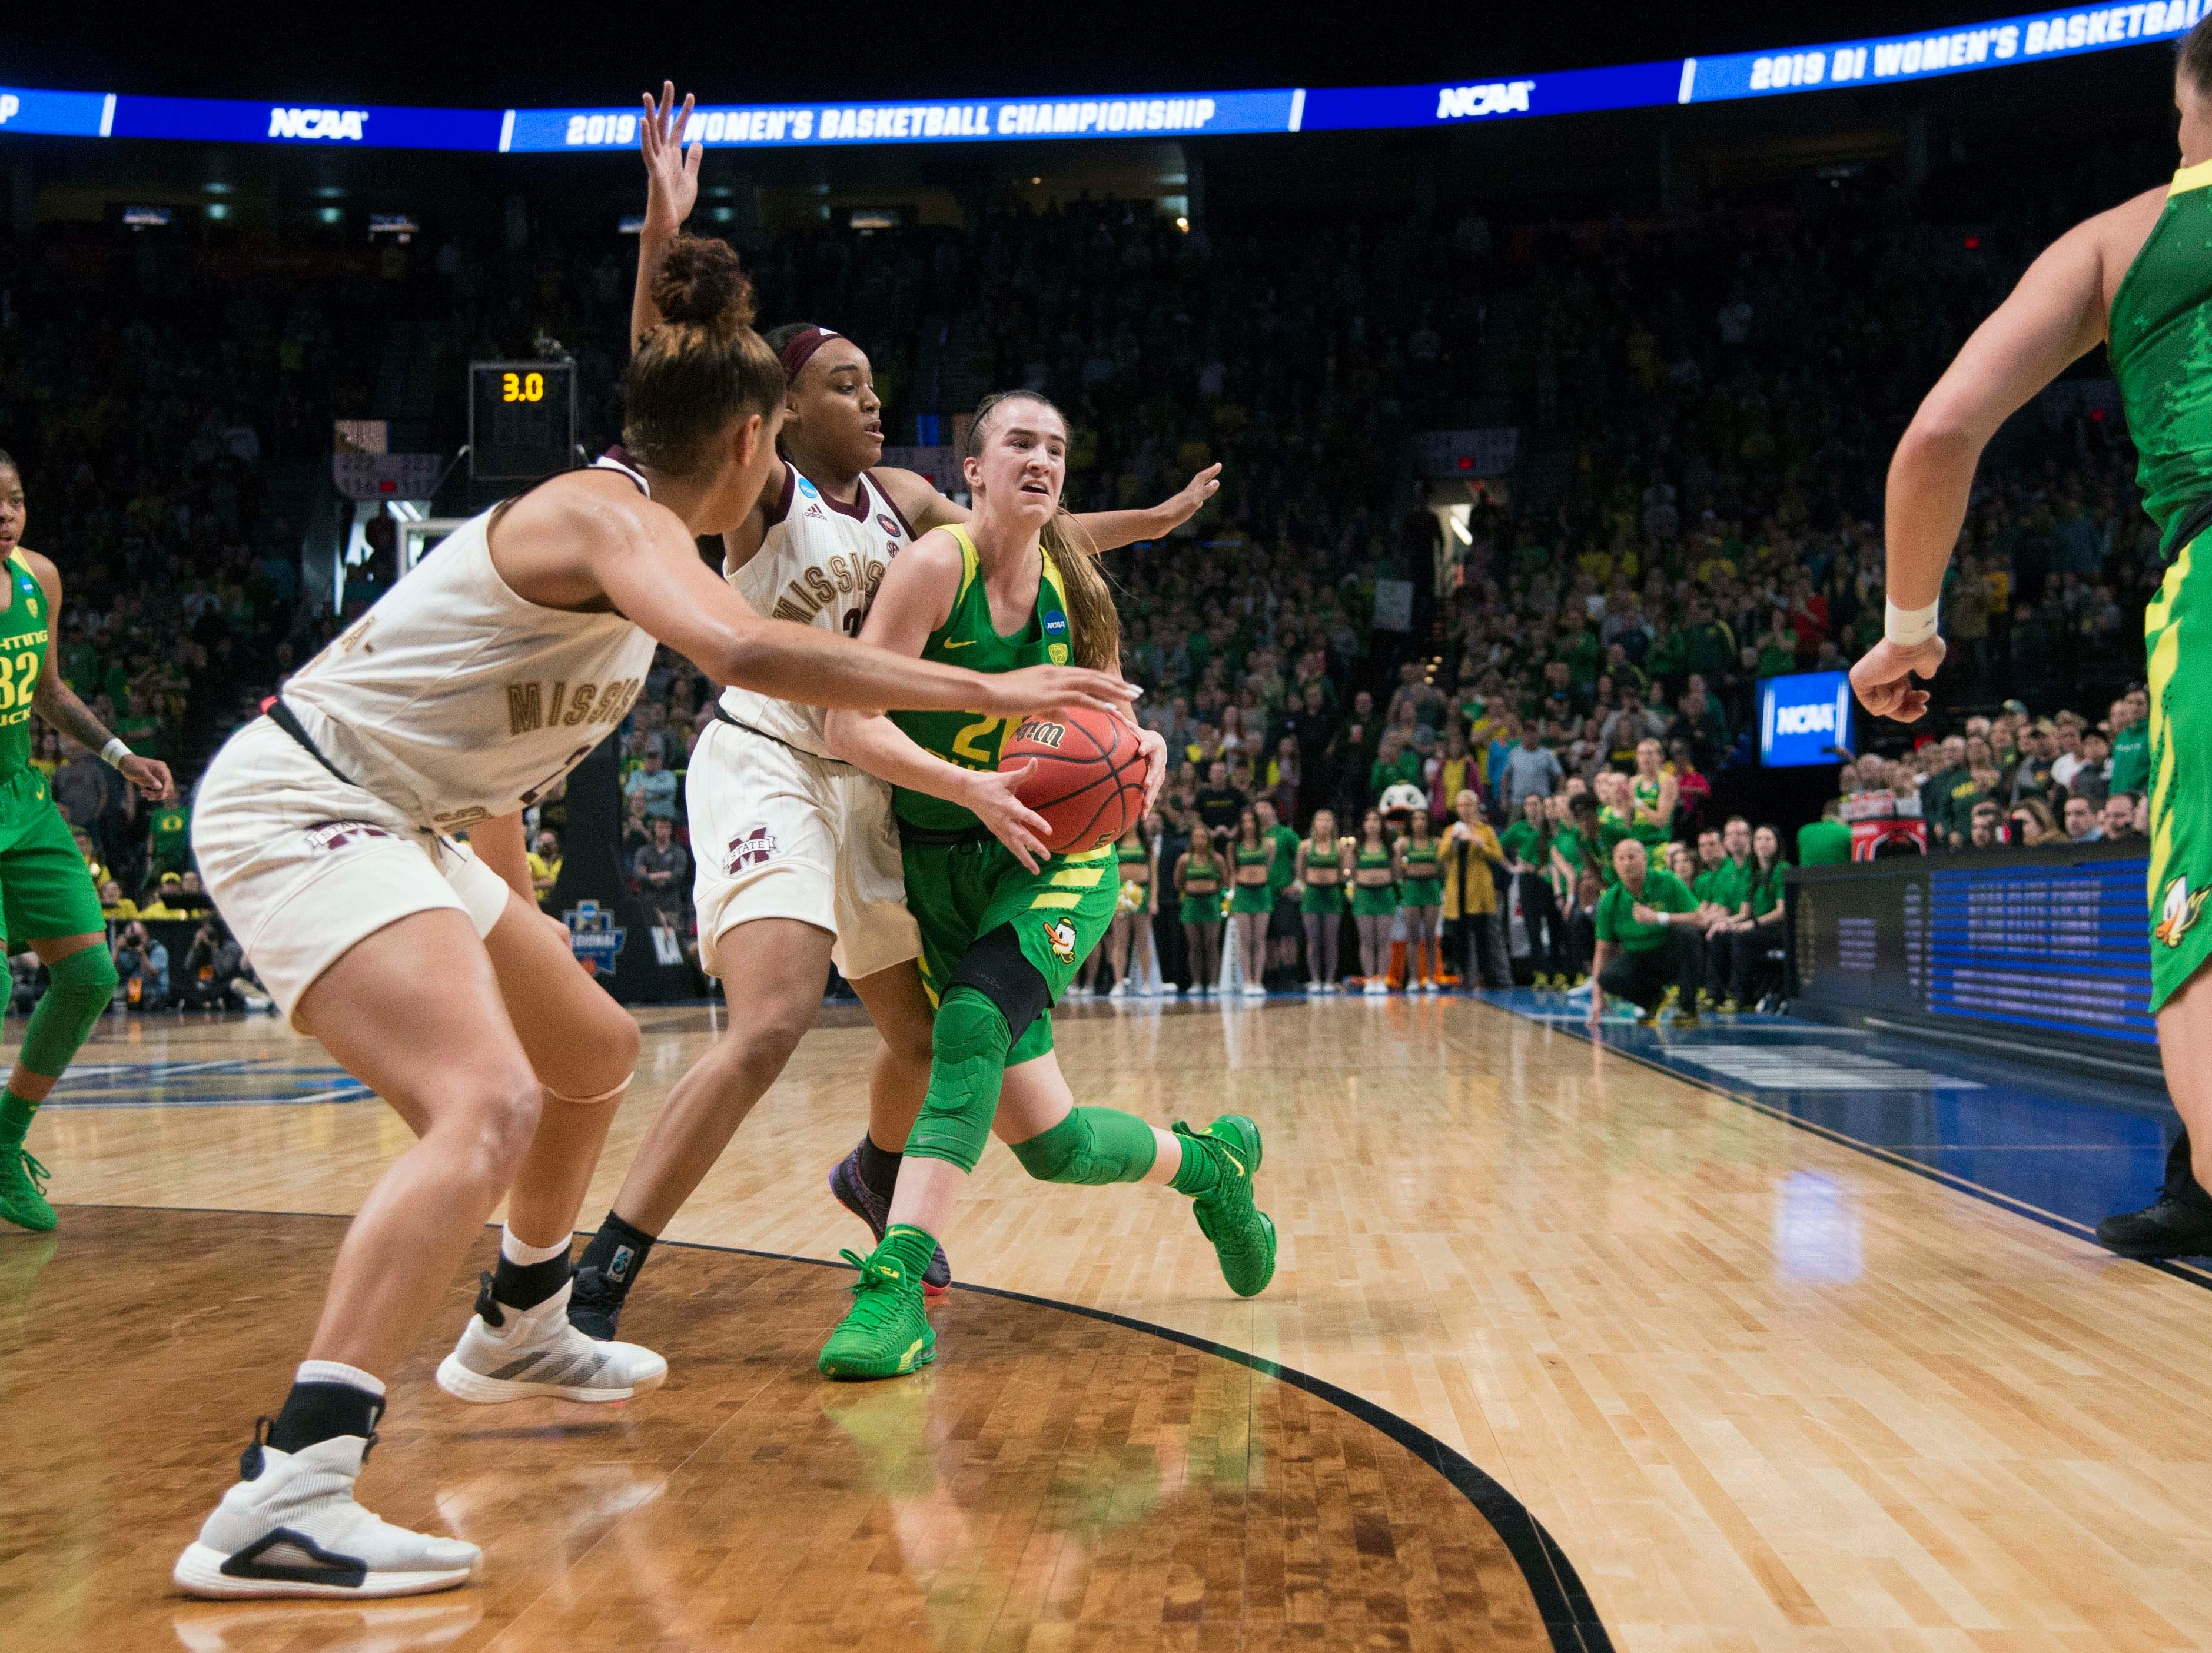 Oregon Ducks guard Sabrina Ionescu (20) runs looks for an outlet pass against Mississippi State Bulldogs guard Bre'Amber Scott (23) during the first half in the championship game of the Portland regional in the women's 2019 NCAA Tournament at Moda Center.